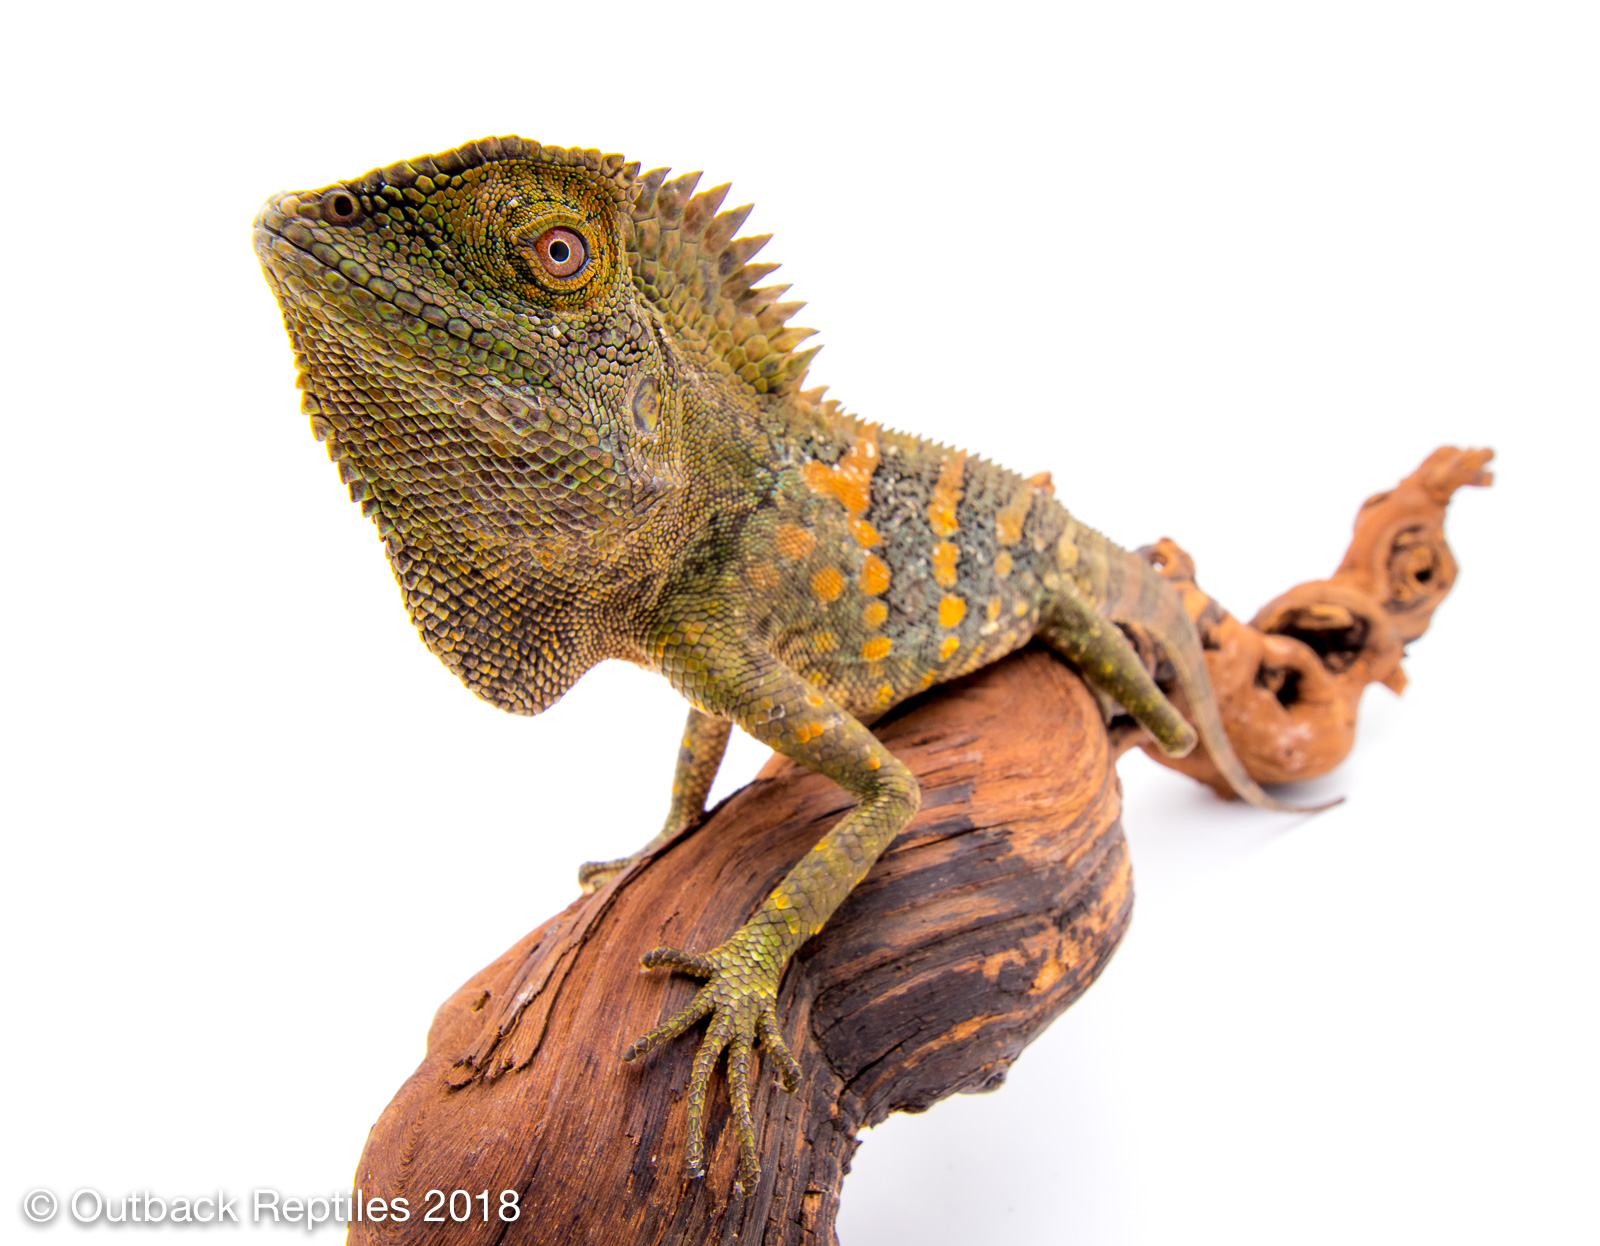 Wide Angle lens for reptile photography